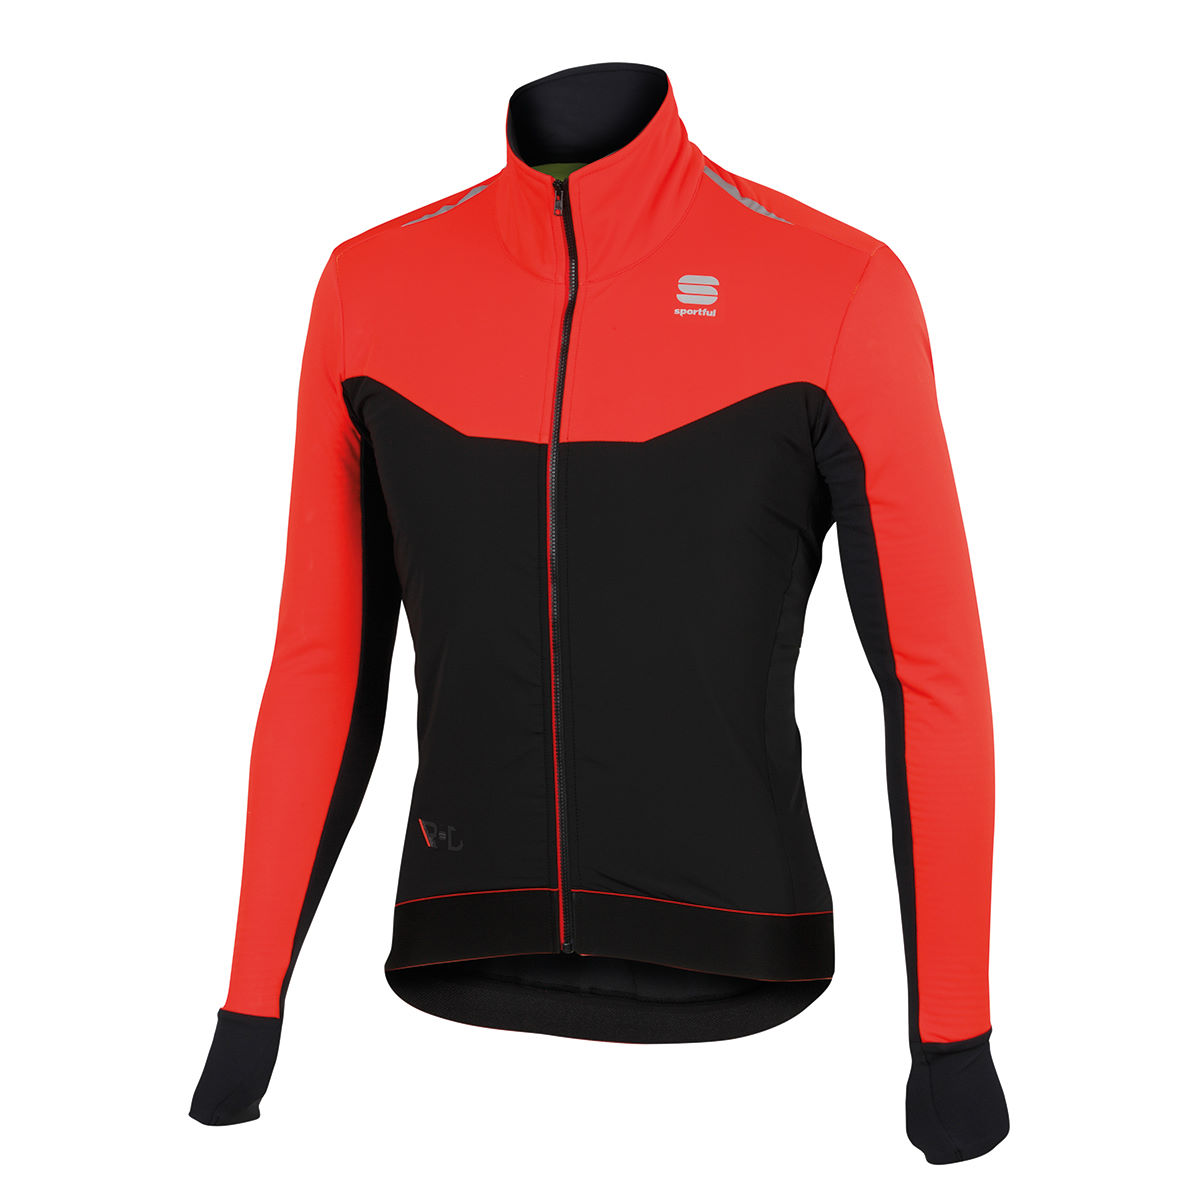 Chaqueta Sportful R & D Light - Chaquetas